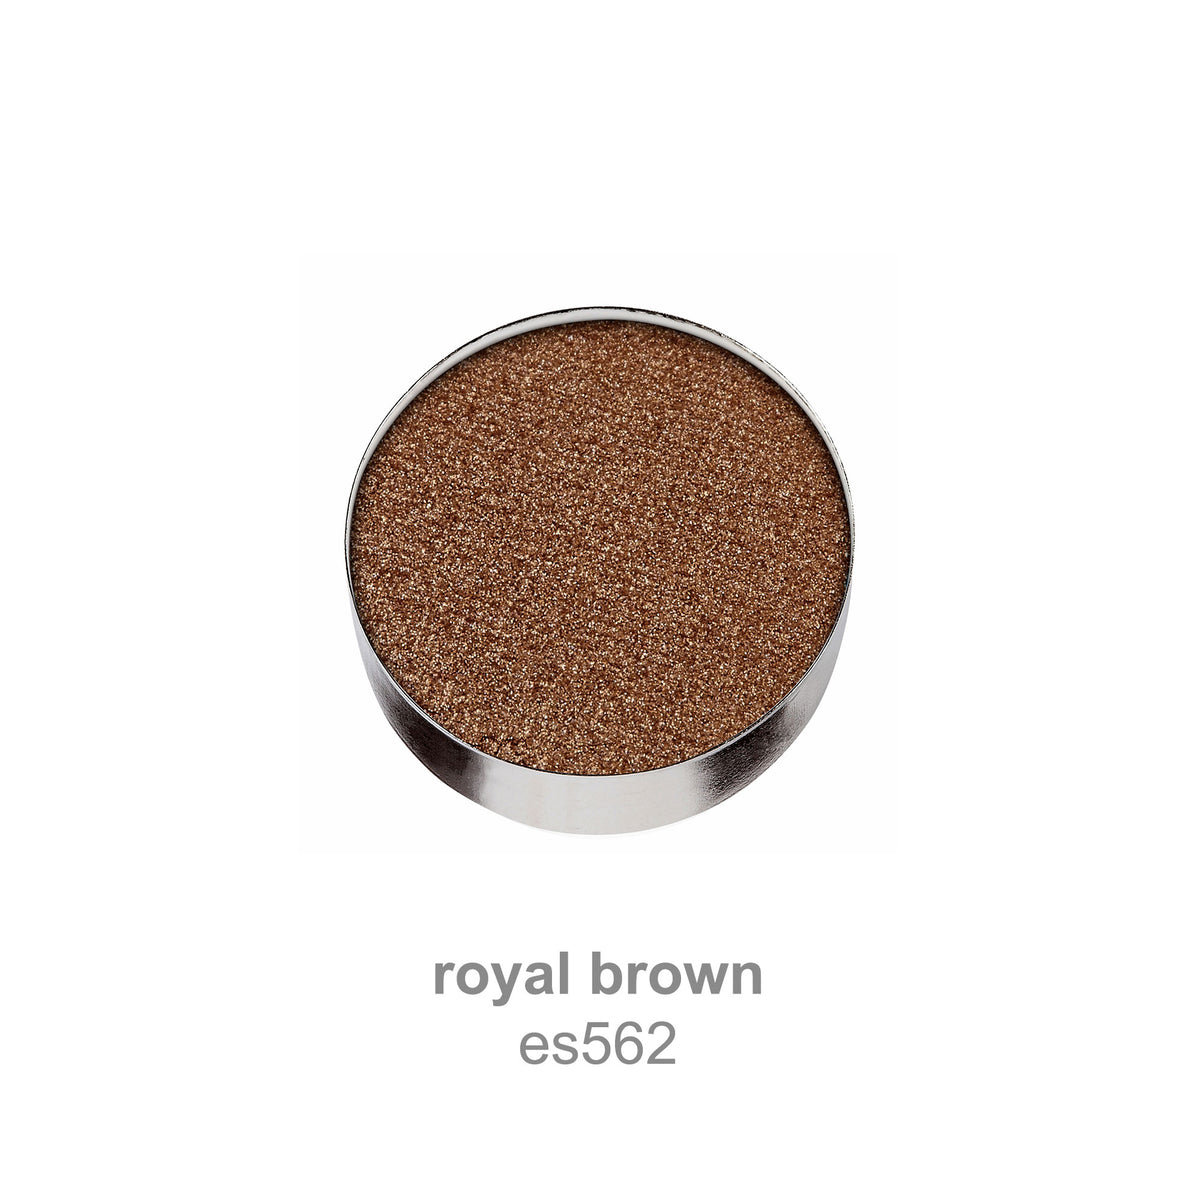 royal brown (es562)